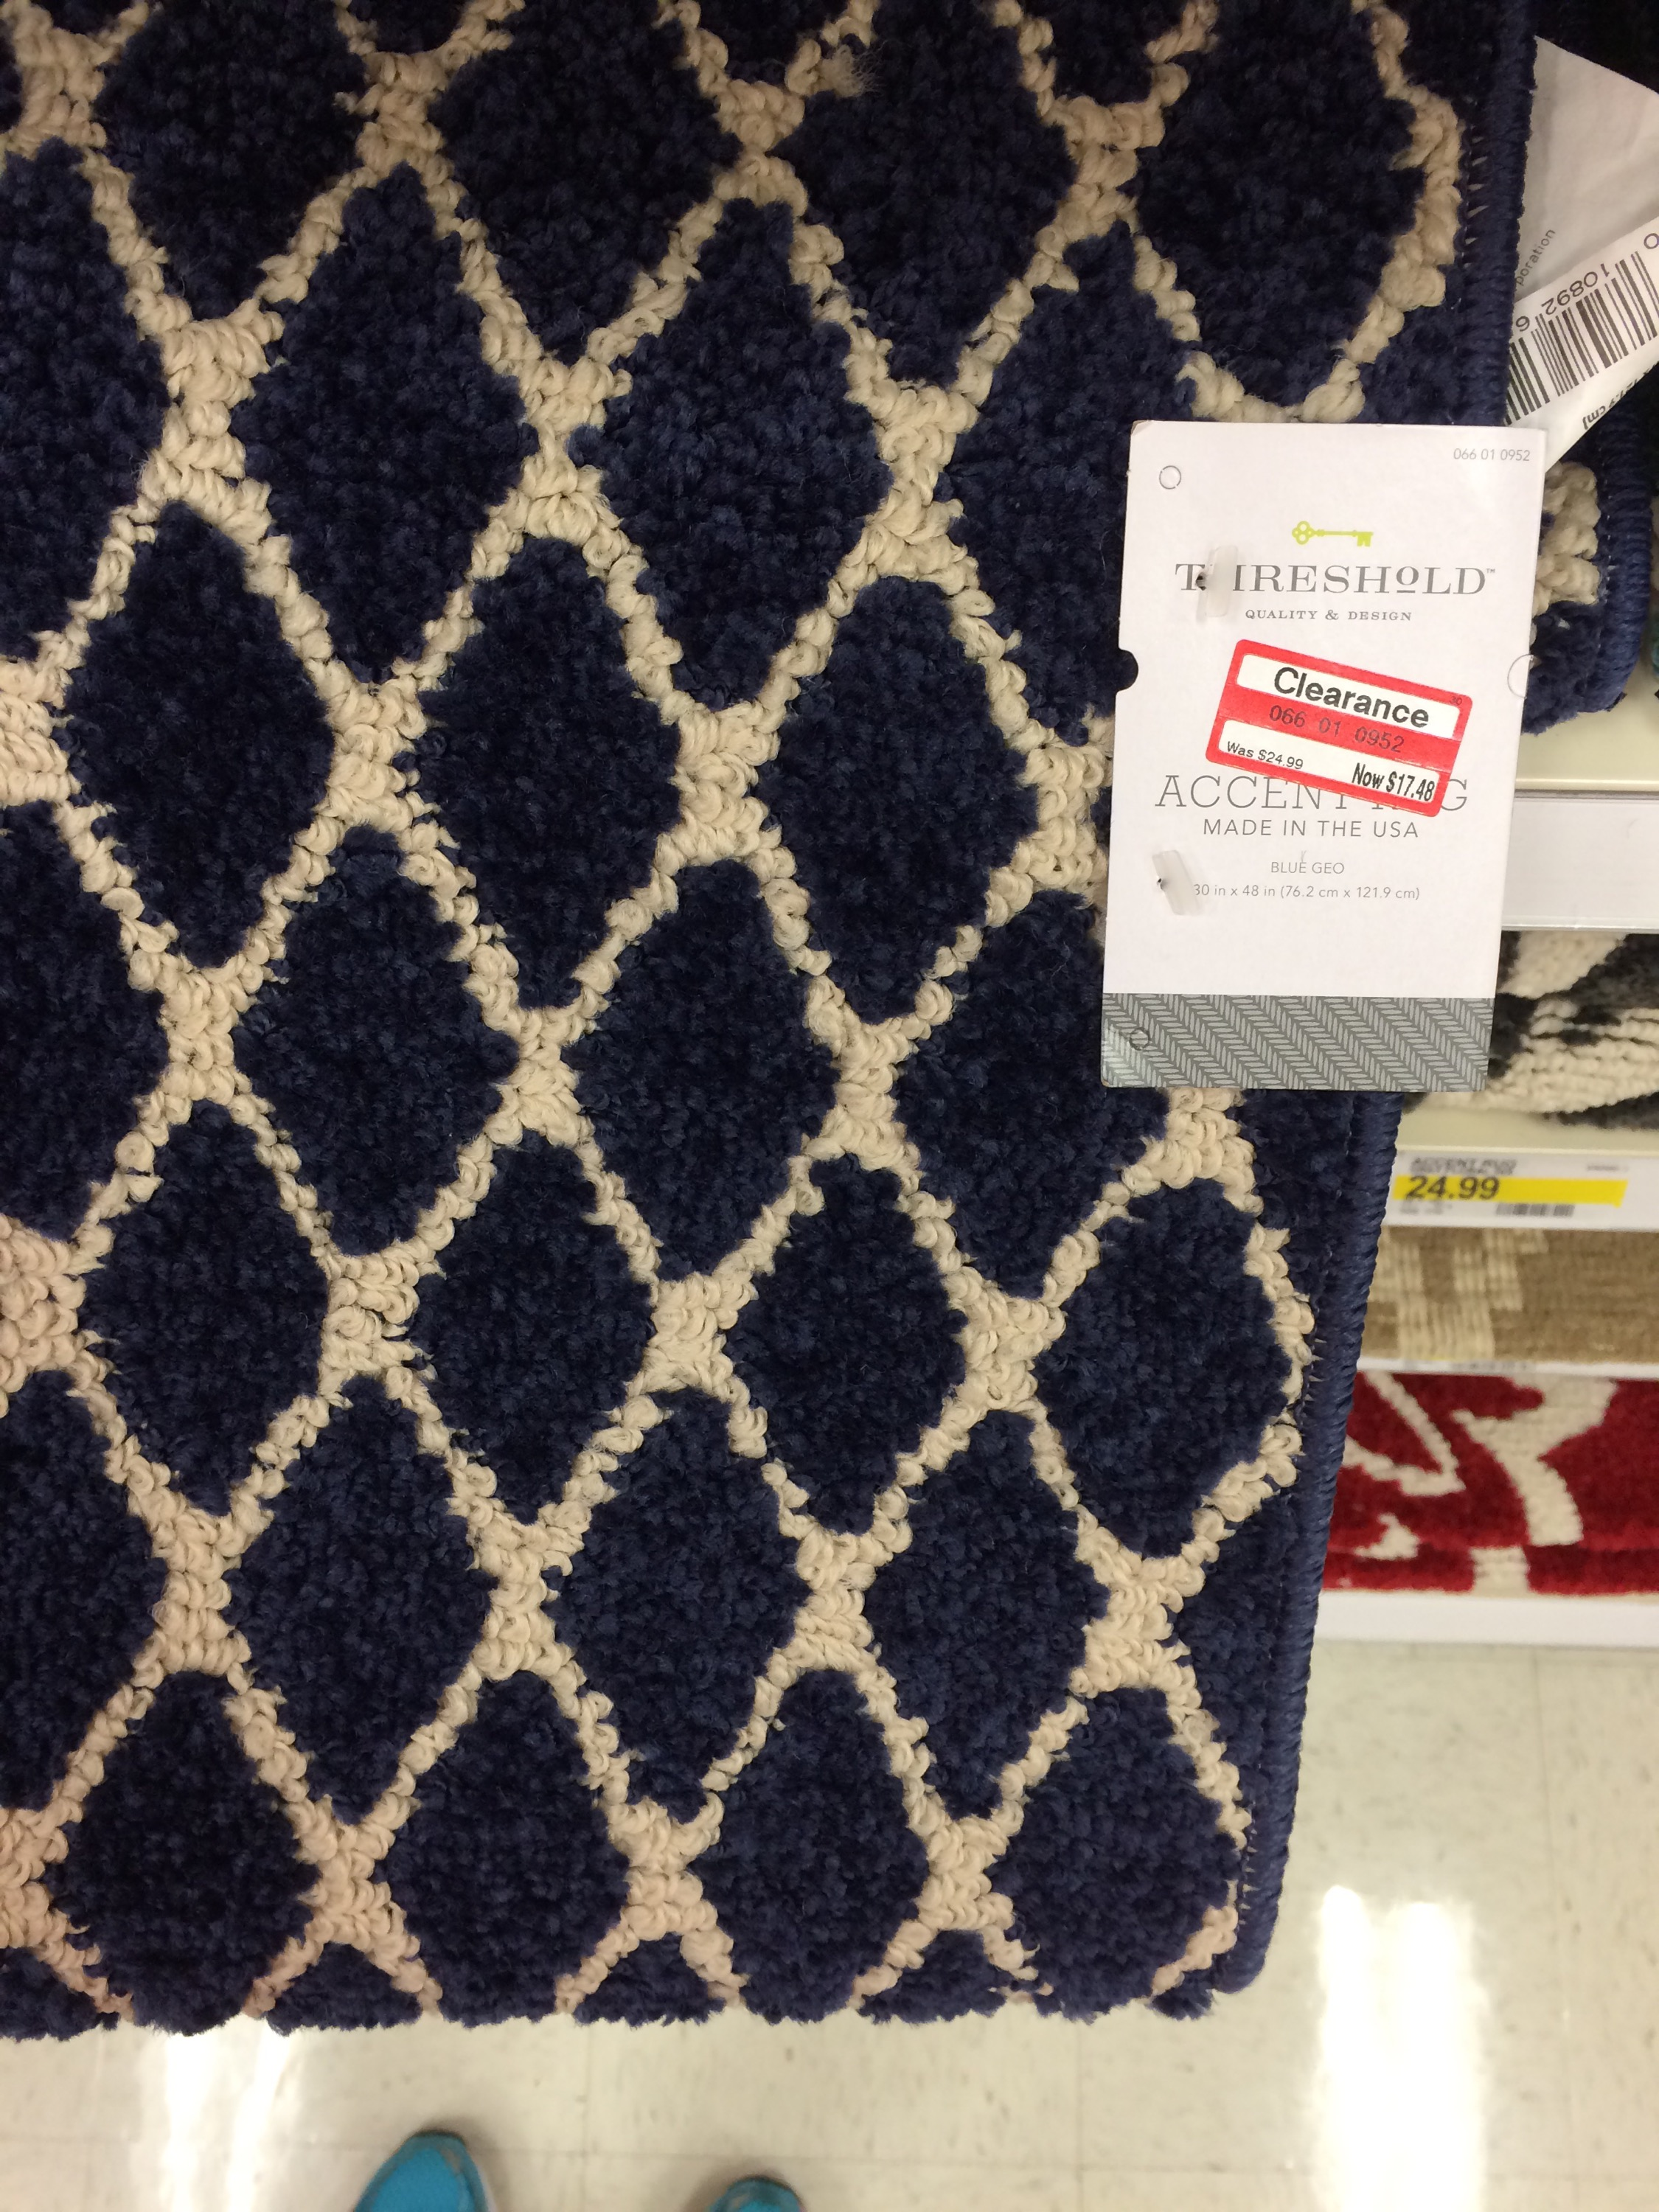 target clearance: accent rugs 30%-50% off, placemats 70% off (plus Accent Rugs